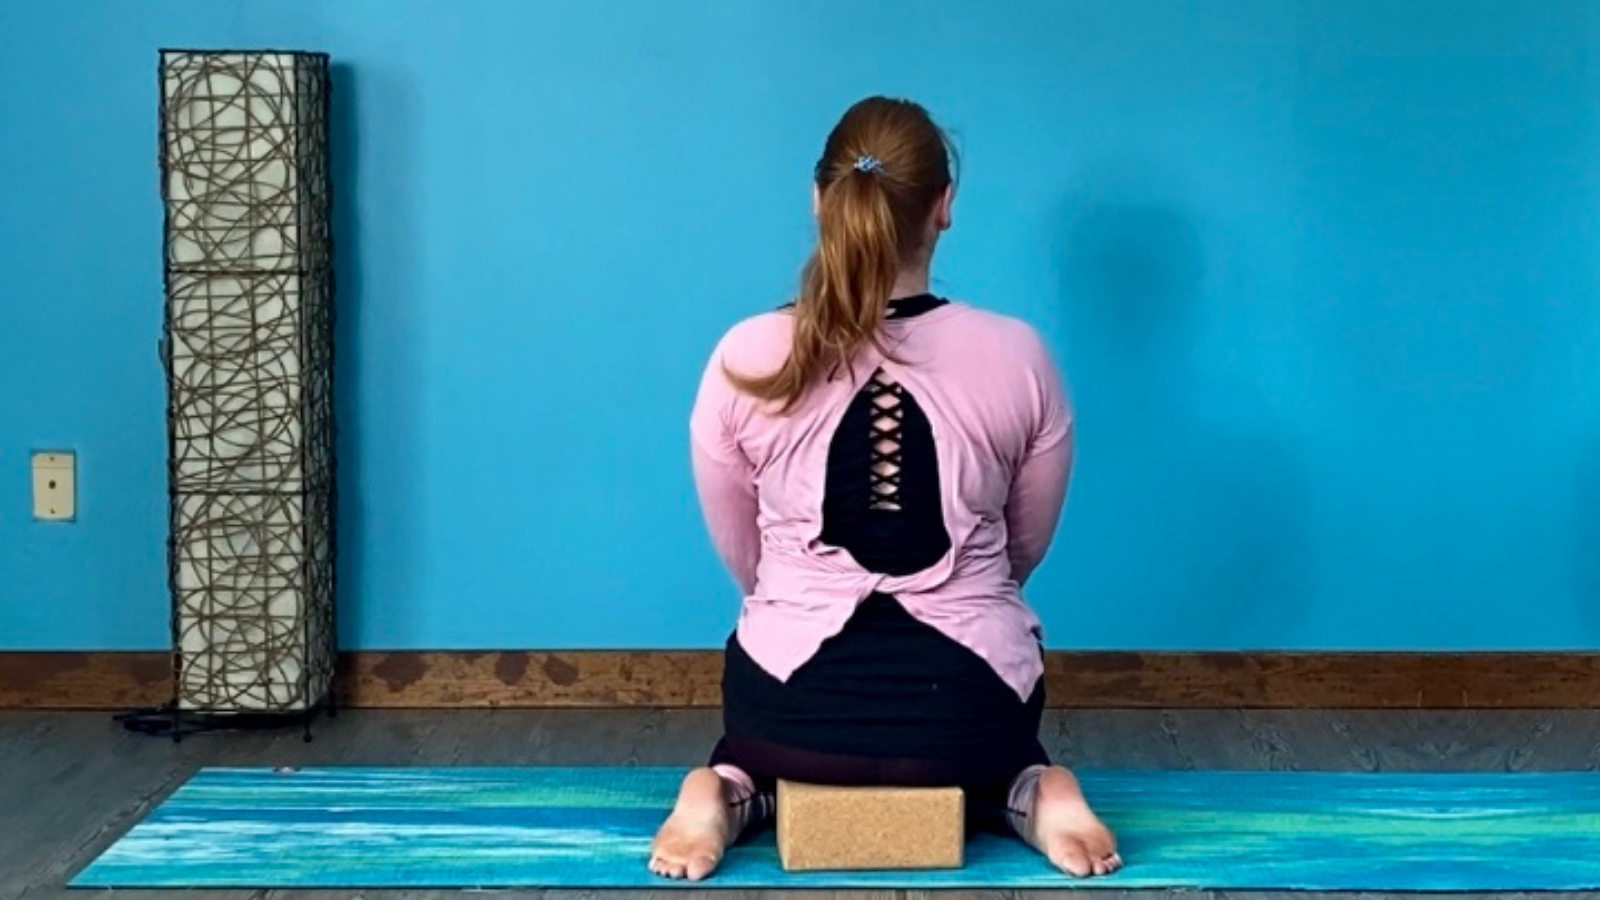 In a yoga class, a student practices Hero Pose (Sanskrit name) to experience the benefits of healthy knees, hips, and ankles